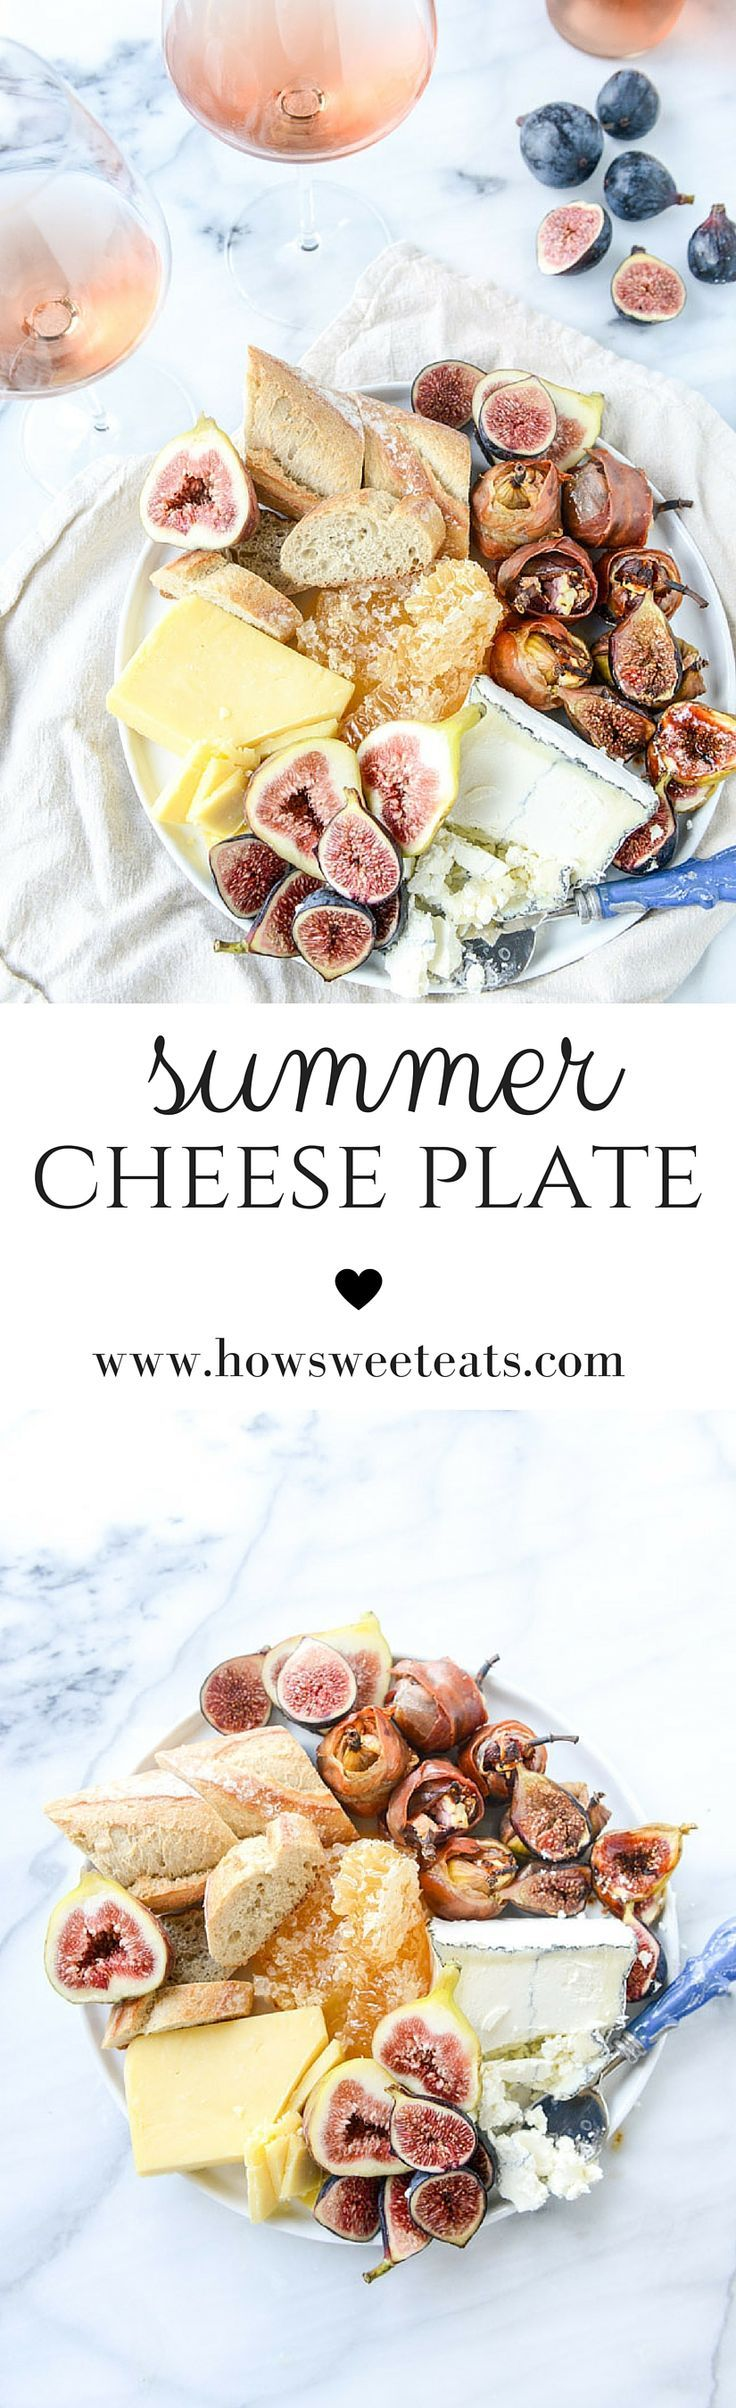 Goat Cheese Stuffed Figs and an Easy Summer Cheese Plate by @howsweeteats I howsweeteats.com